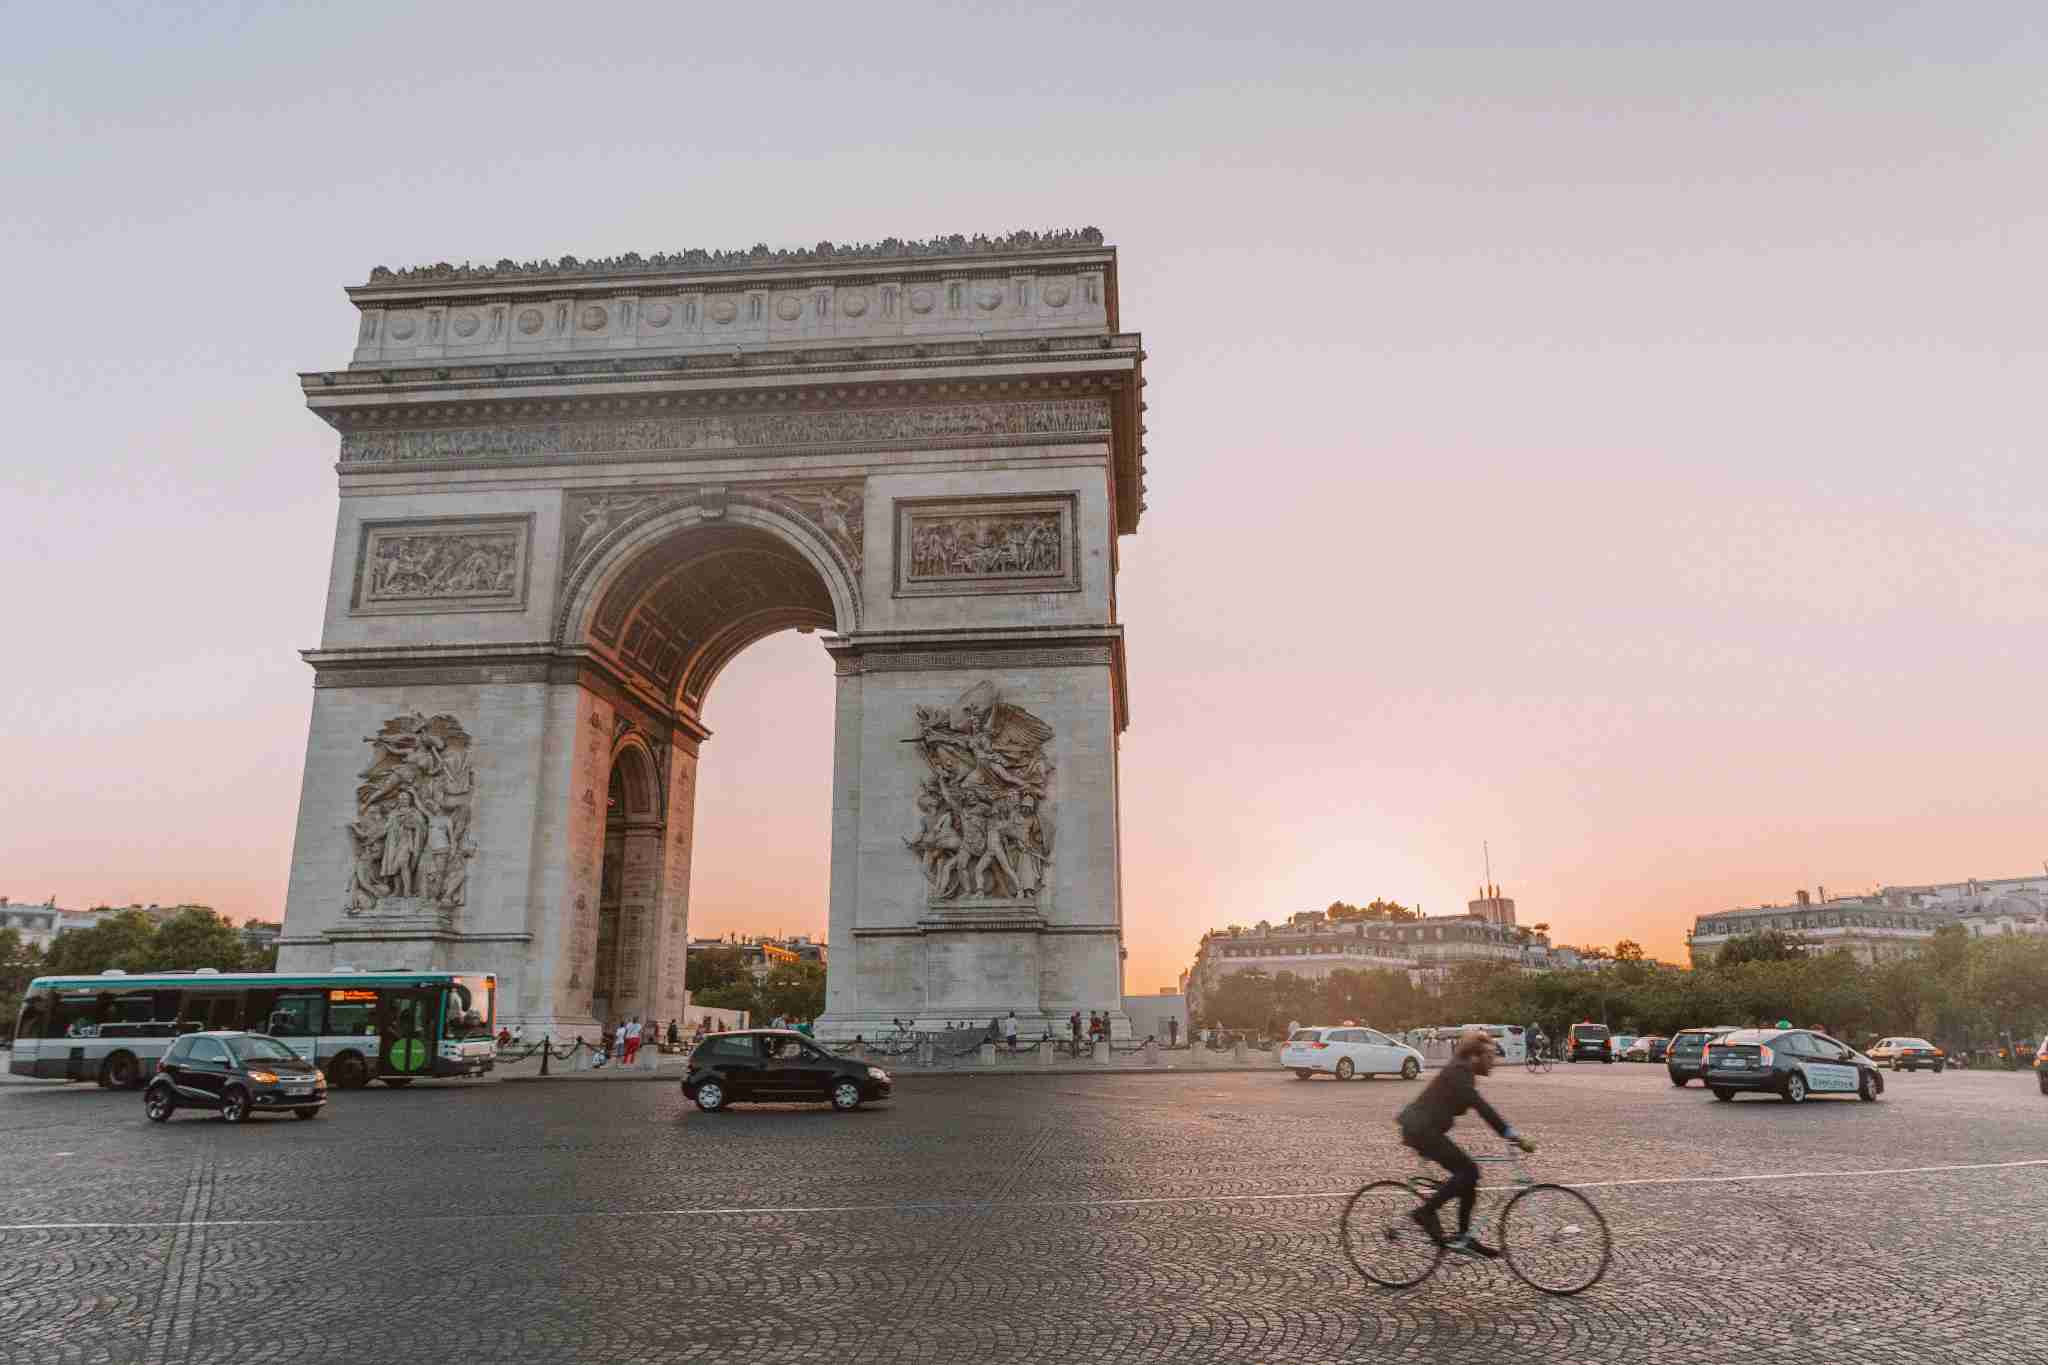 """As Audrey Hepburn once said, """"Paris is always a good idea!"""" (Photo by Brendan Dorsey / The Points Guy)"""